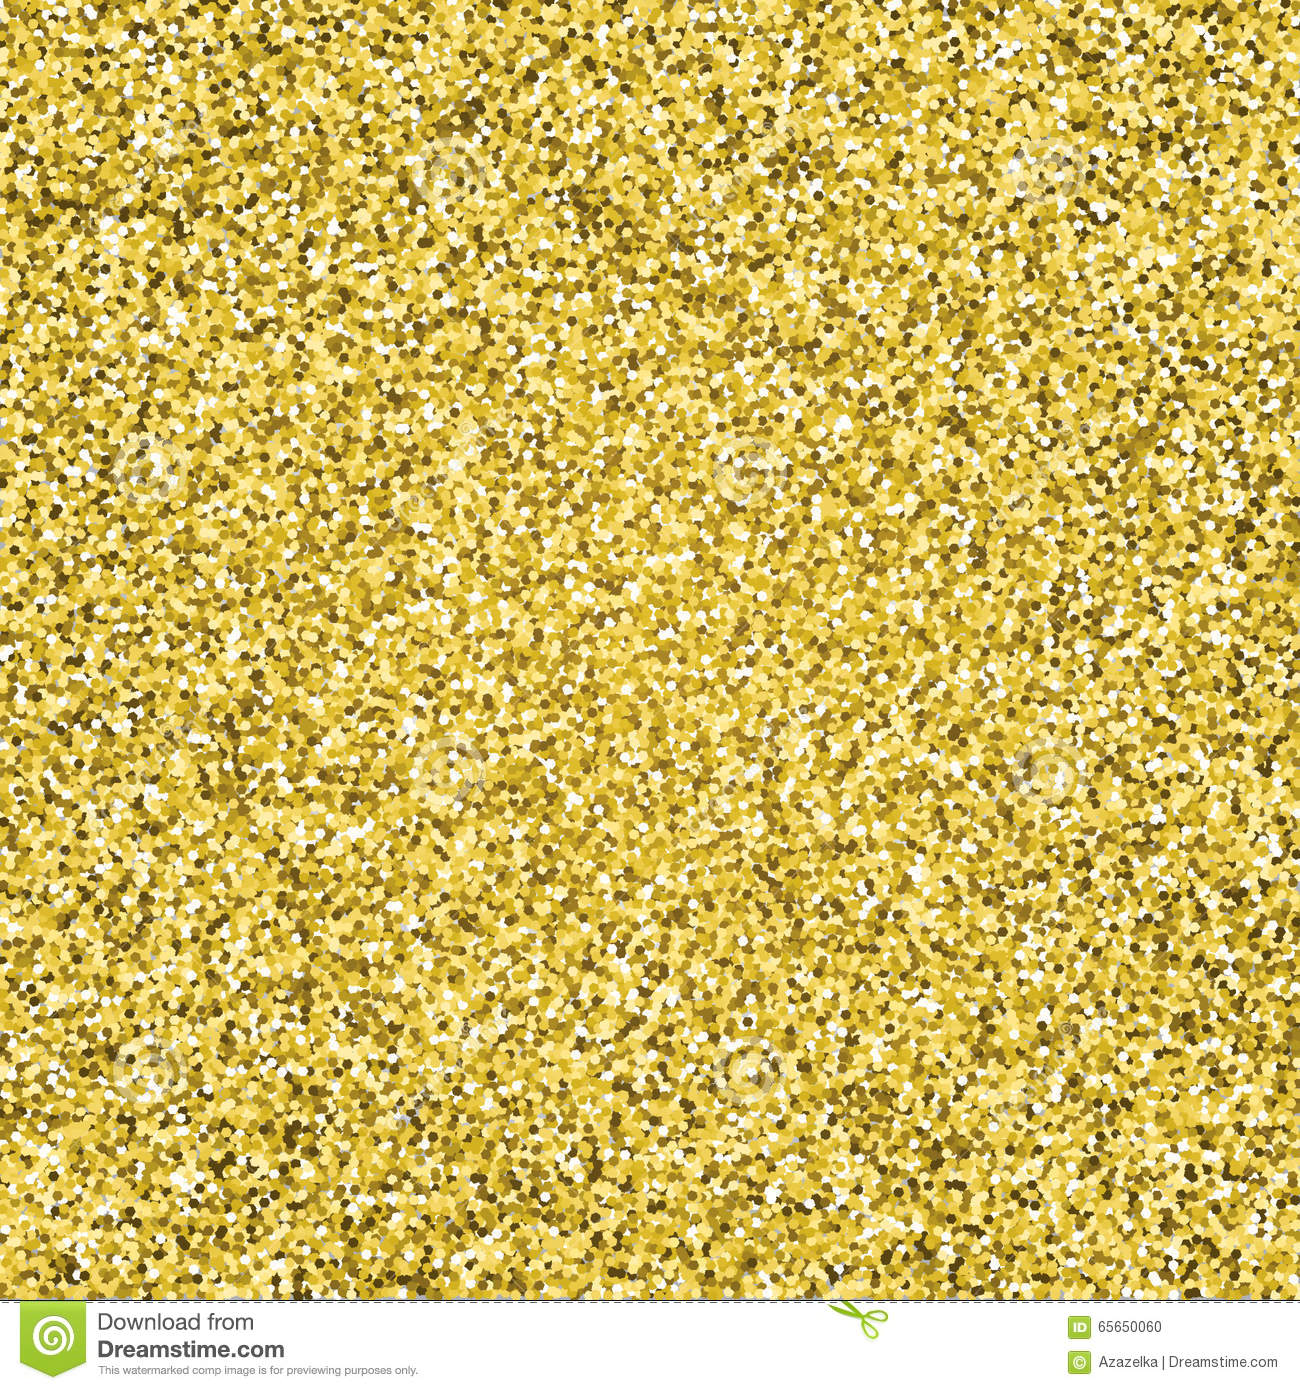 Glitter Gold: Gold Glitter Sparkling Pattern. Decorative Seamless